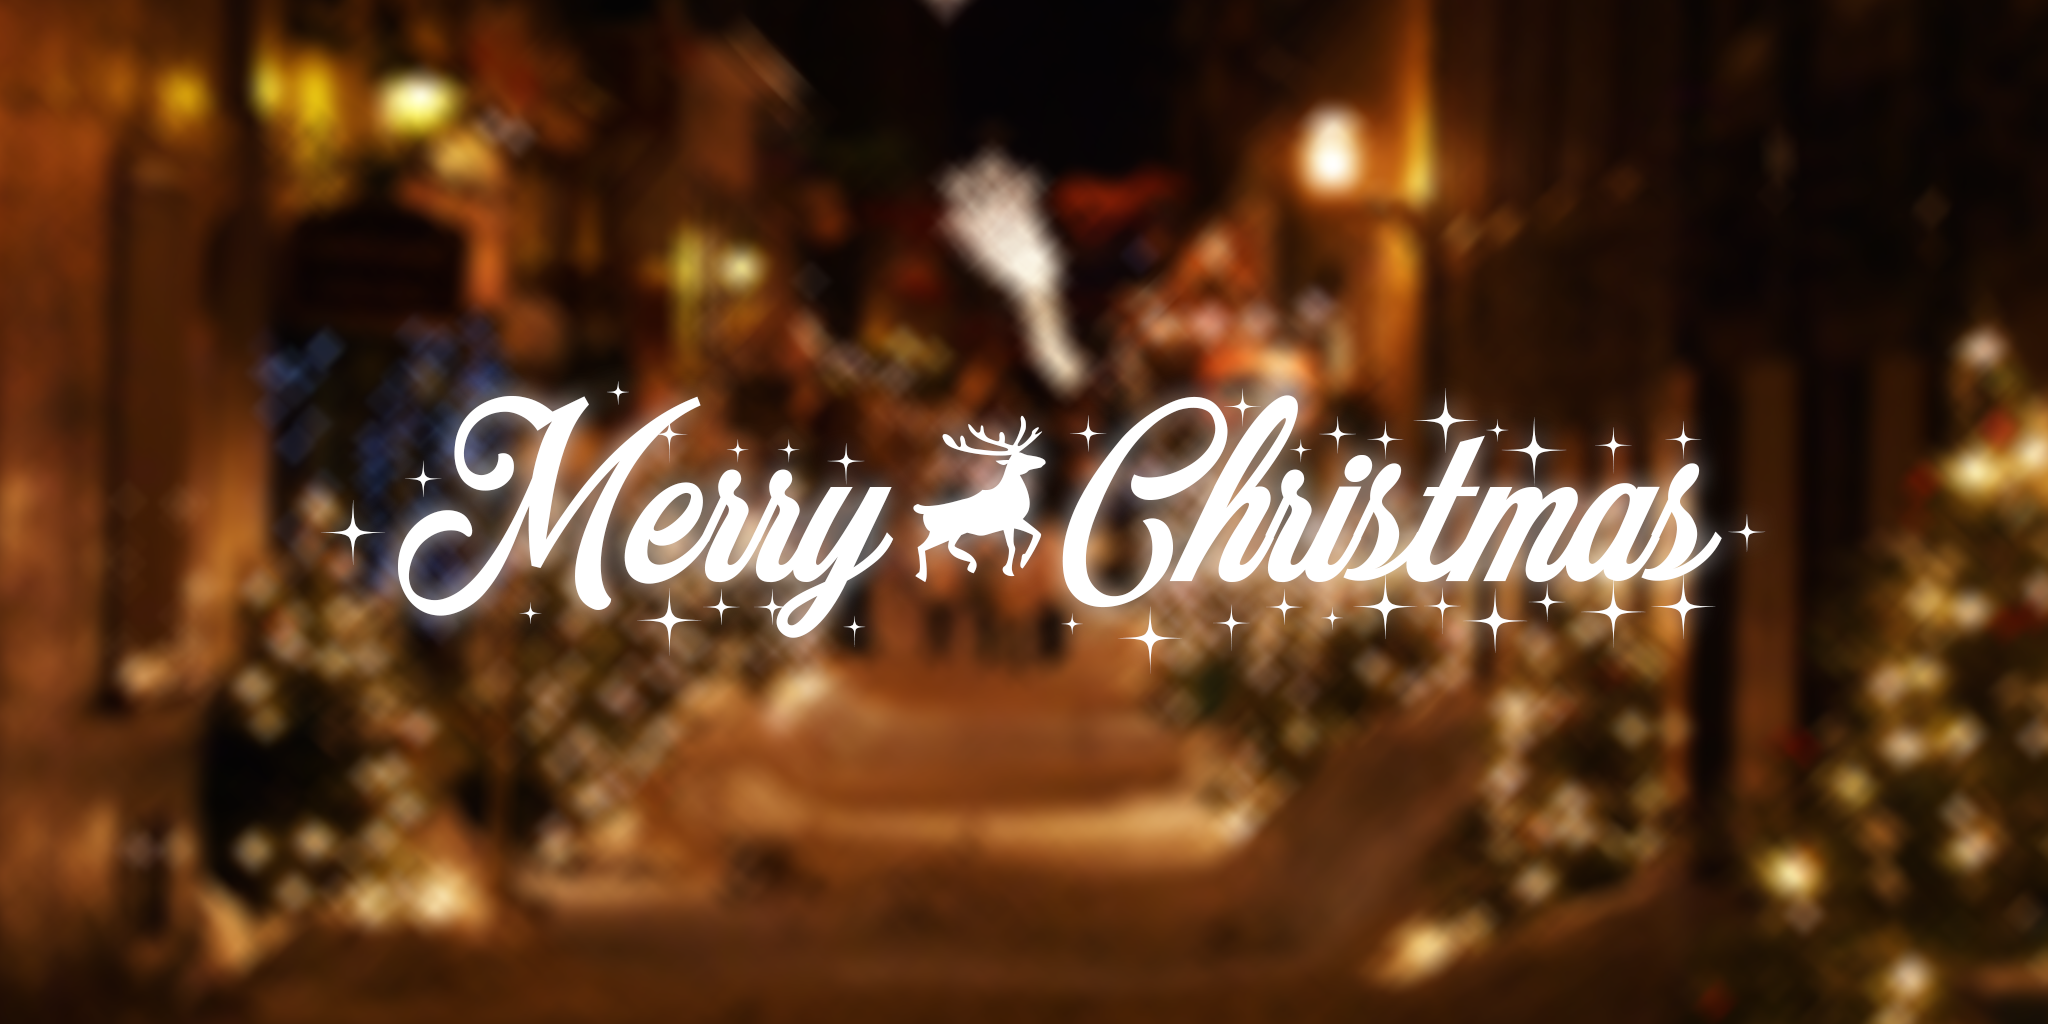 Merry Christmas Font By Mans Greback